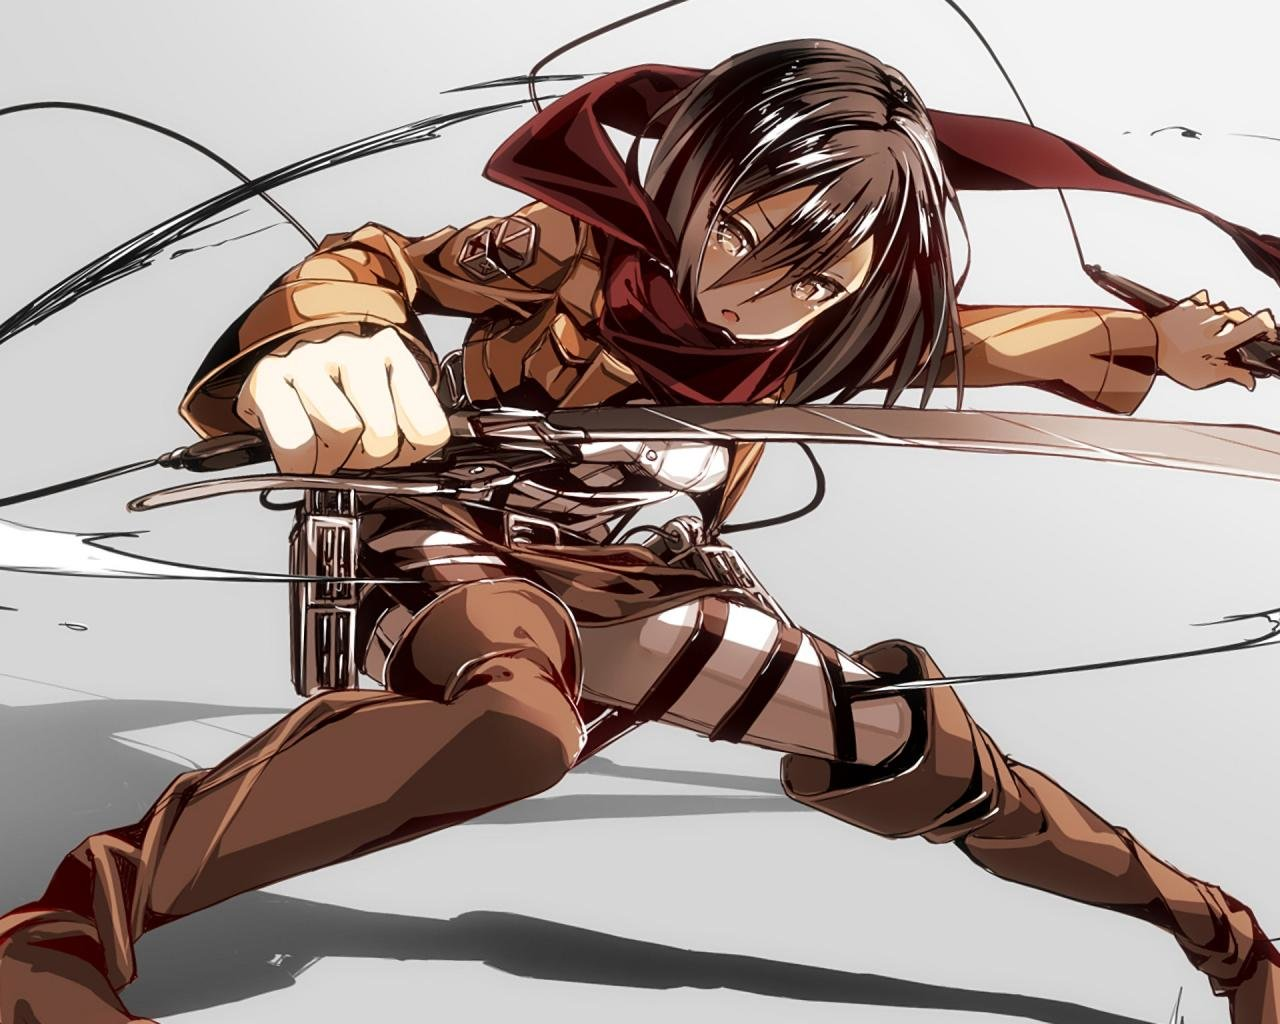 Download hd 1280x1024 Mikasa Ackerman desktop background ID:206340 for free